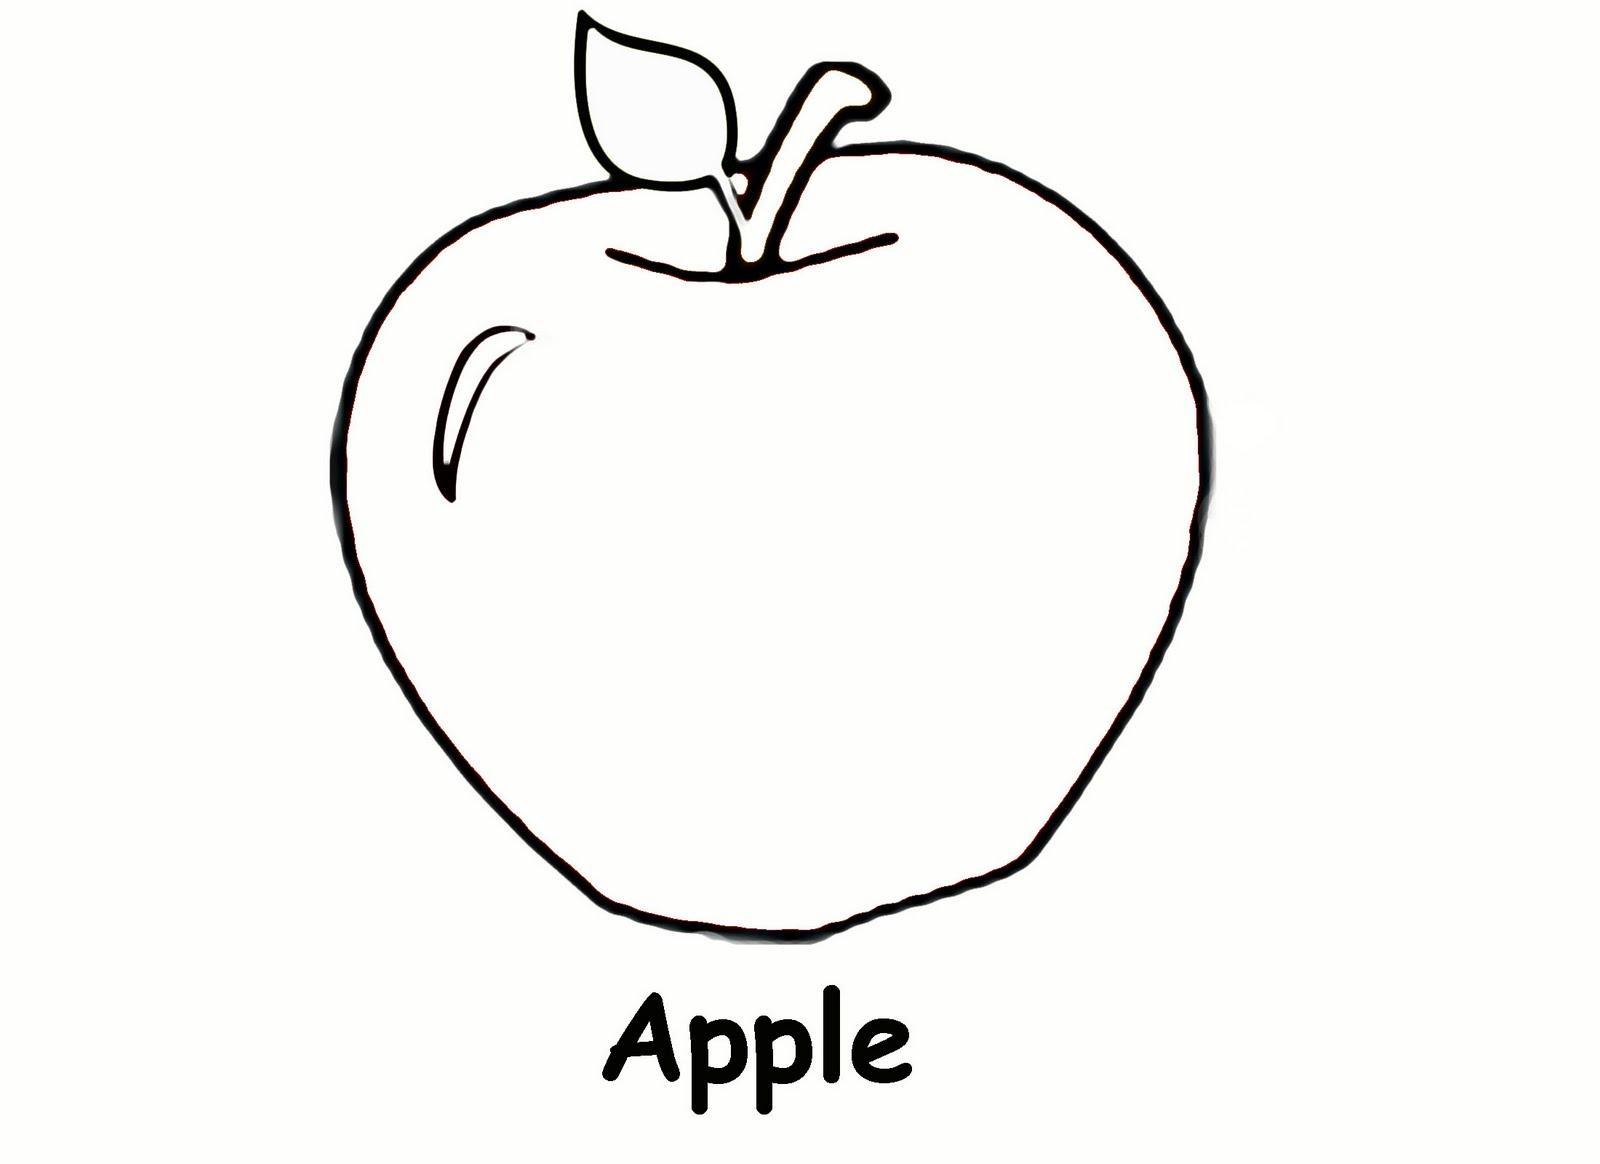 Printable coloring pages for 12 year olds - Free Apple Coloring Pages